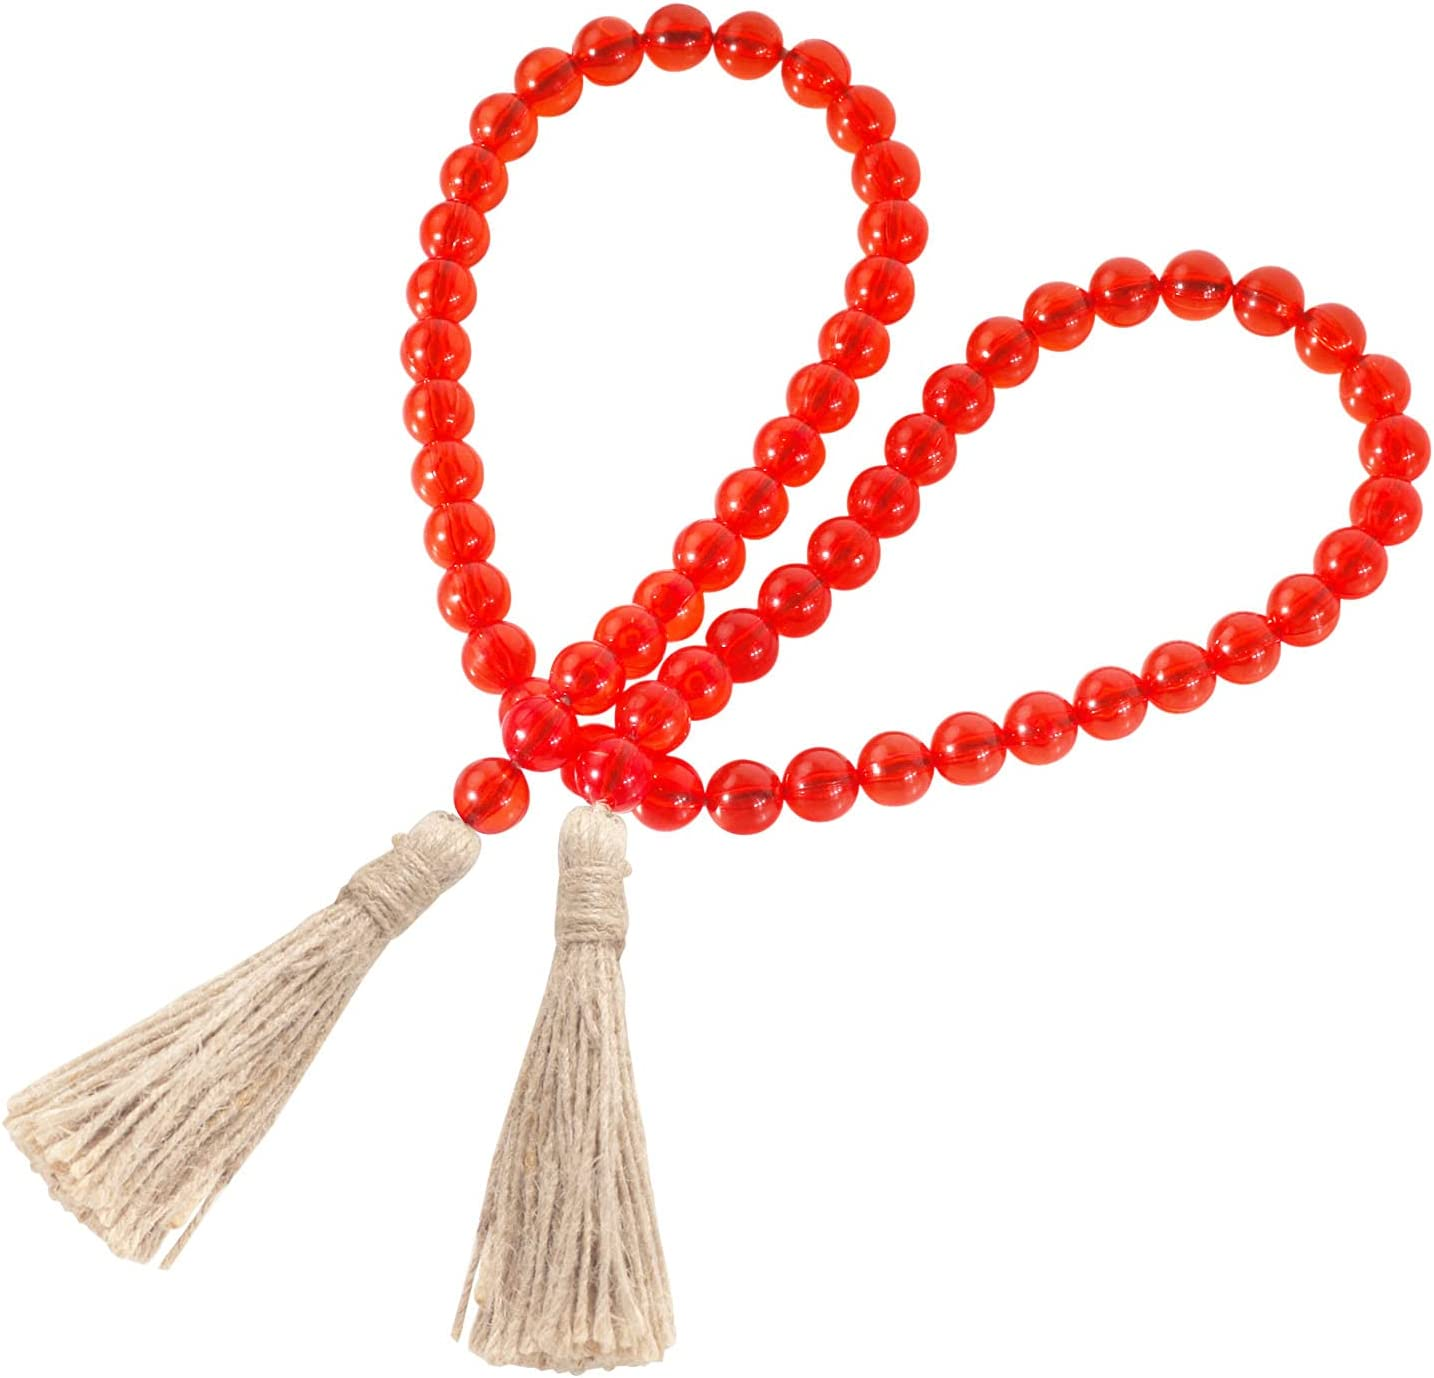 Panba Farmhouse Beads with Tassel Bead Garland Boho Wall Decor for Party Garland and Rustic Home, Tier Tray Coffee Table Decor Beads Handmade Easter Decoration Christmas Ornament (Red)